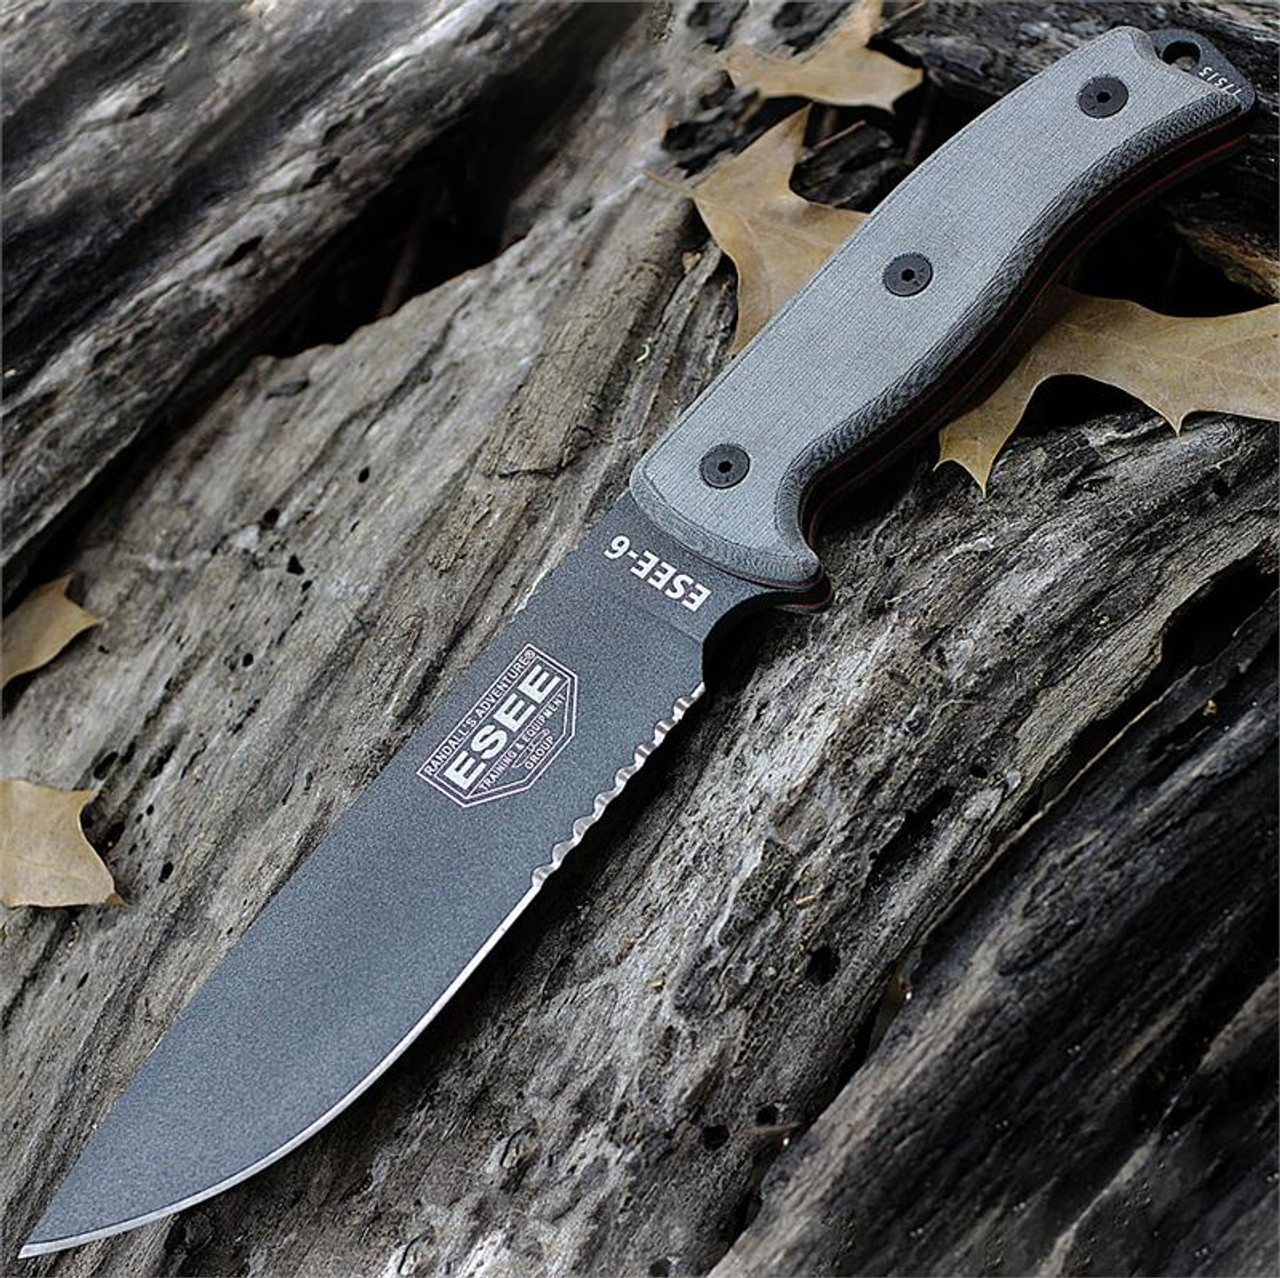 ESEE Knives, 6S-TG Tactical Gray Partially Serrated Edge, Rounded Pommel, Linen Micarta Handles, Black Molded Sheath